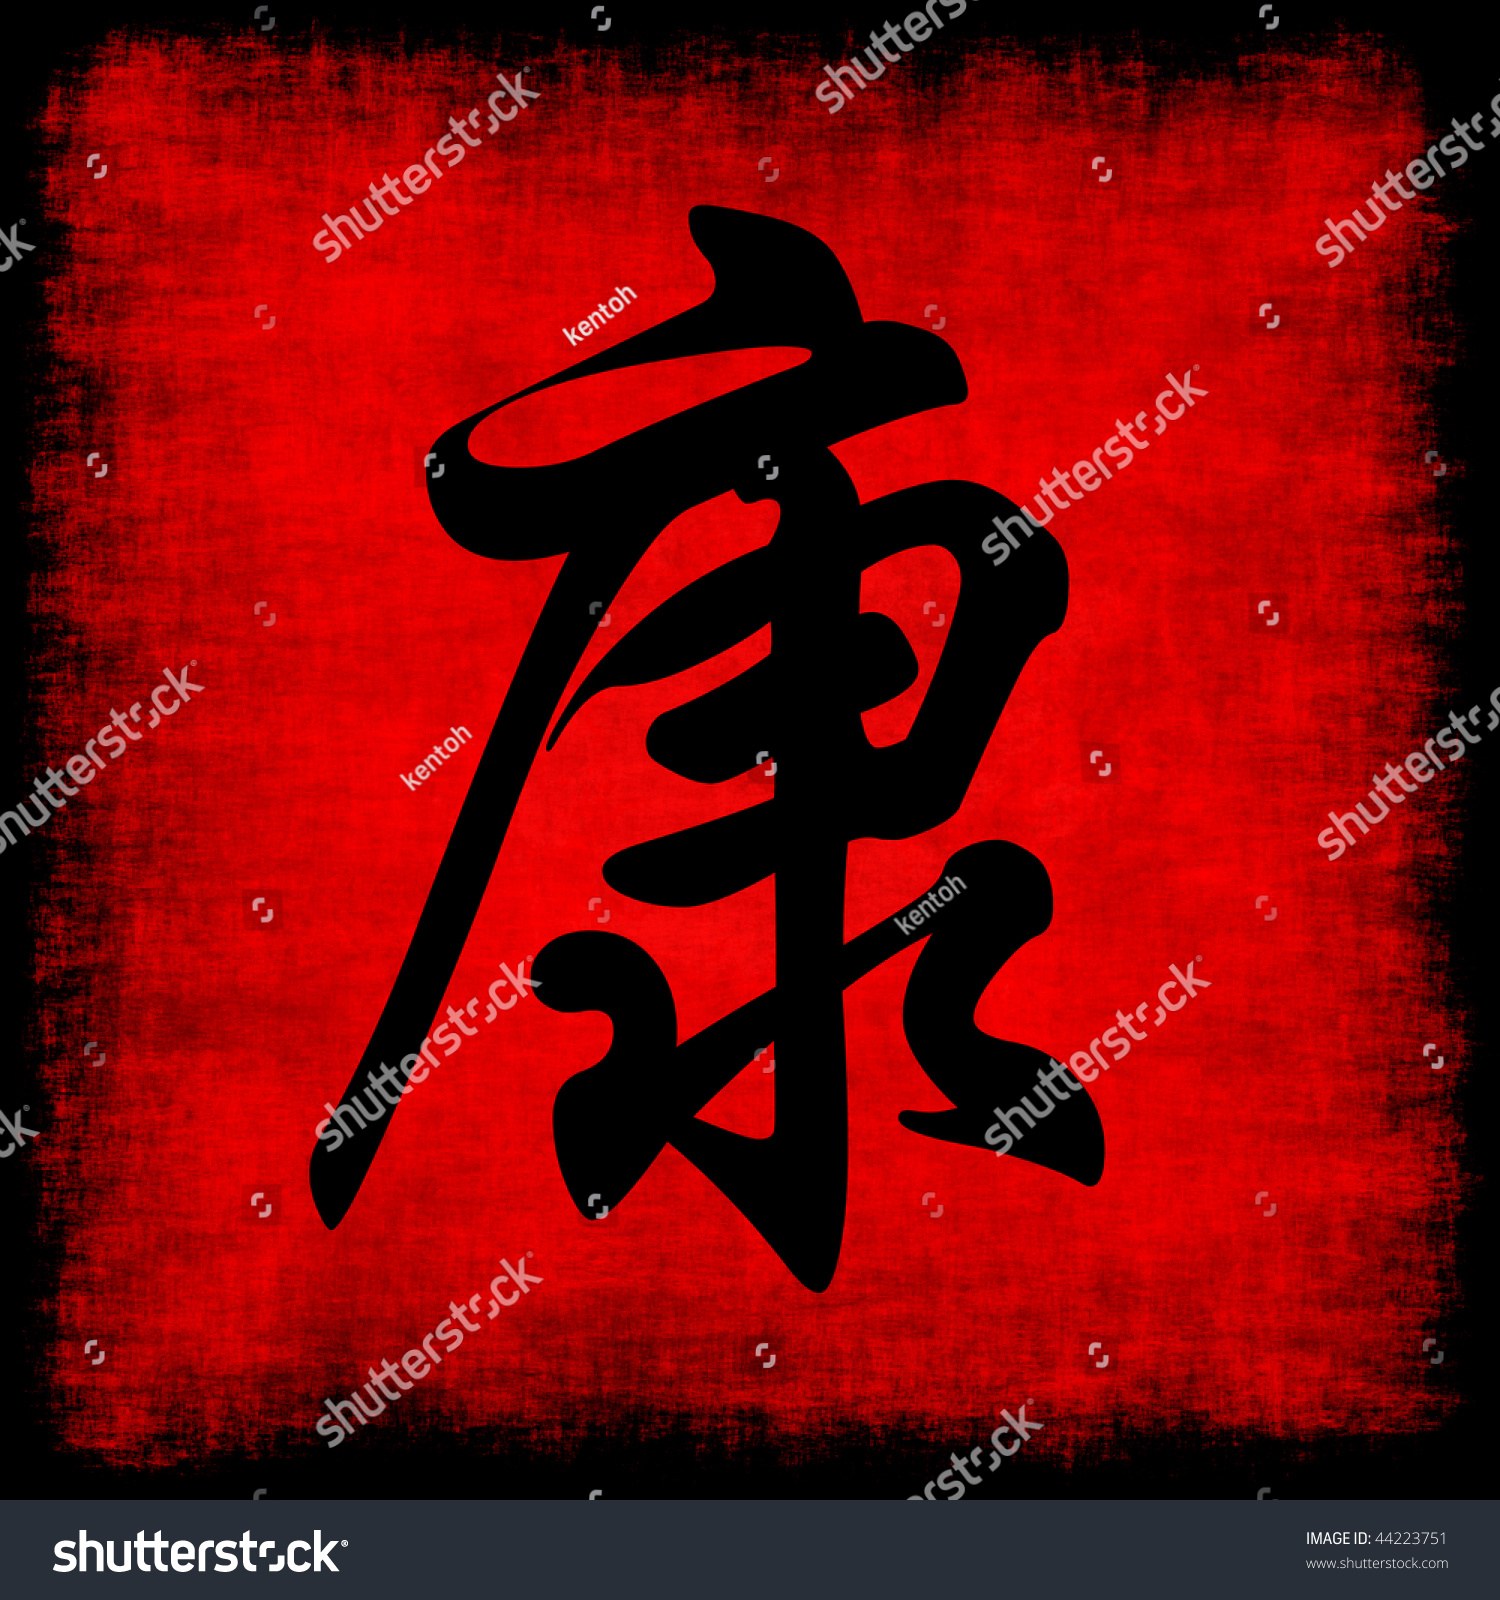 Health chinese calligraphy symbol grunge background stock health chinese calligraphy symbol grunge background set biocorpaavc Gallery